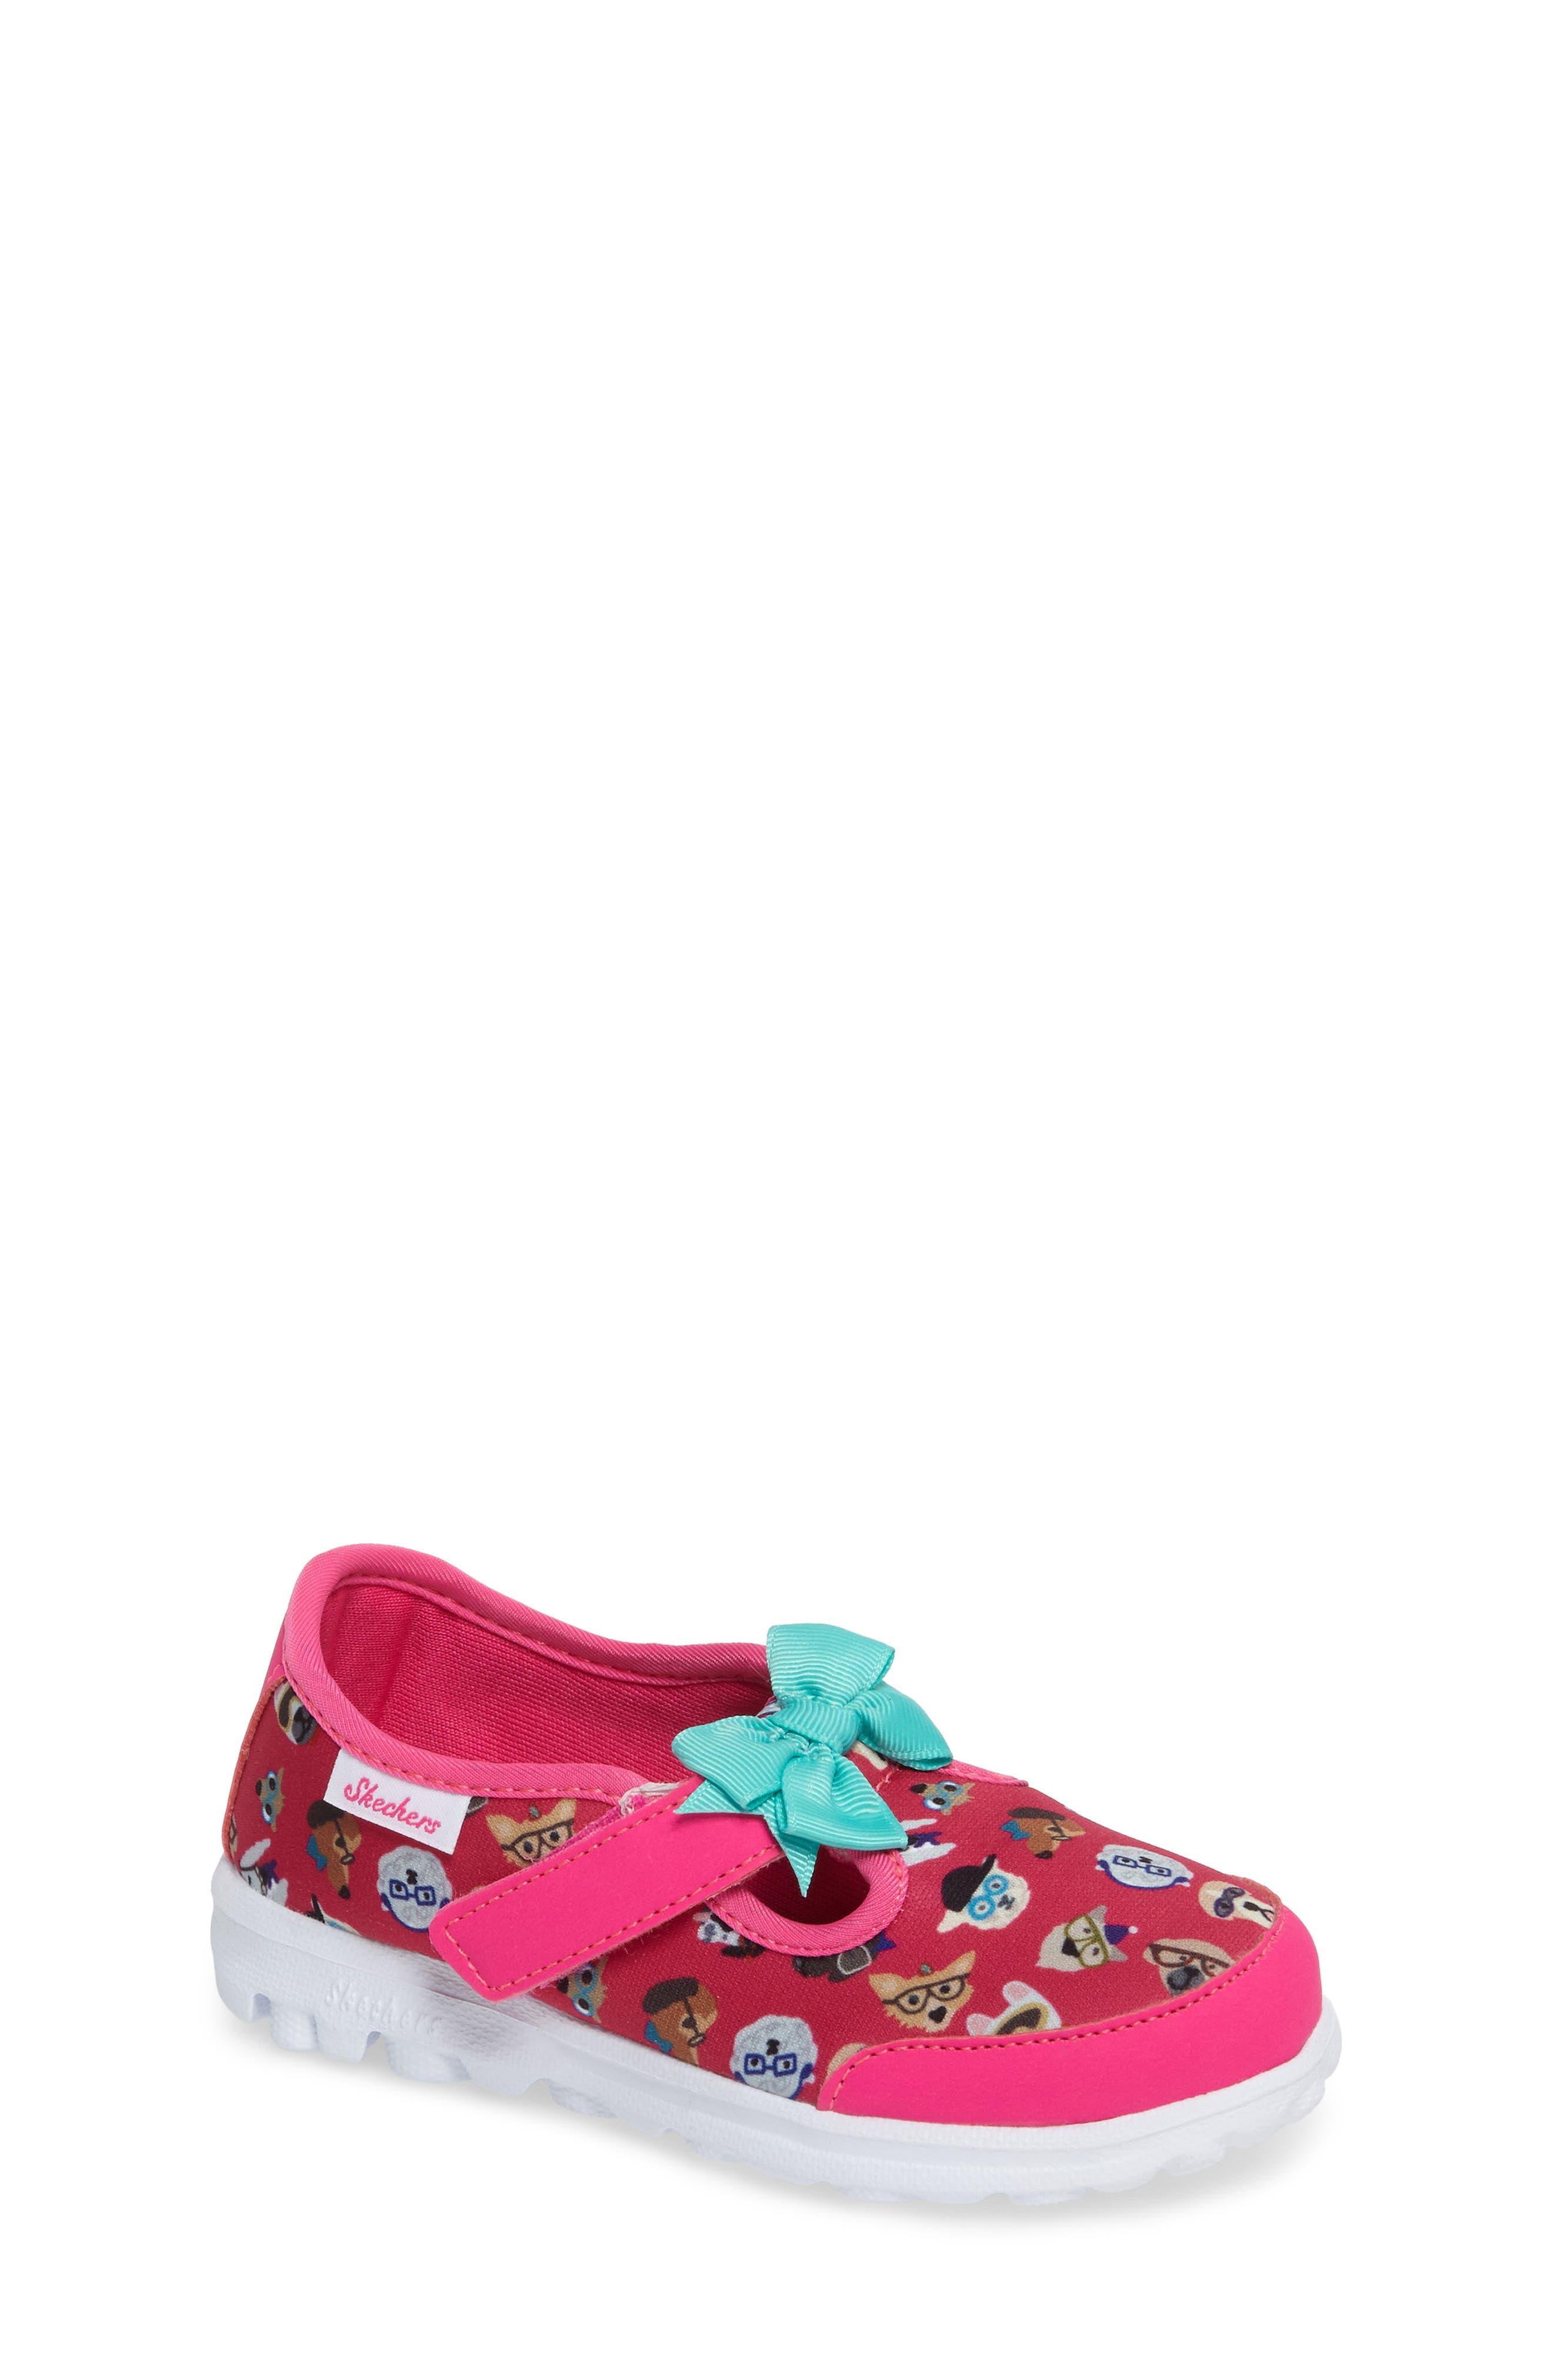 SKECHERS Go Walk Bow Wow Sneaker (Baby, Walker & Toddler)